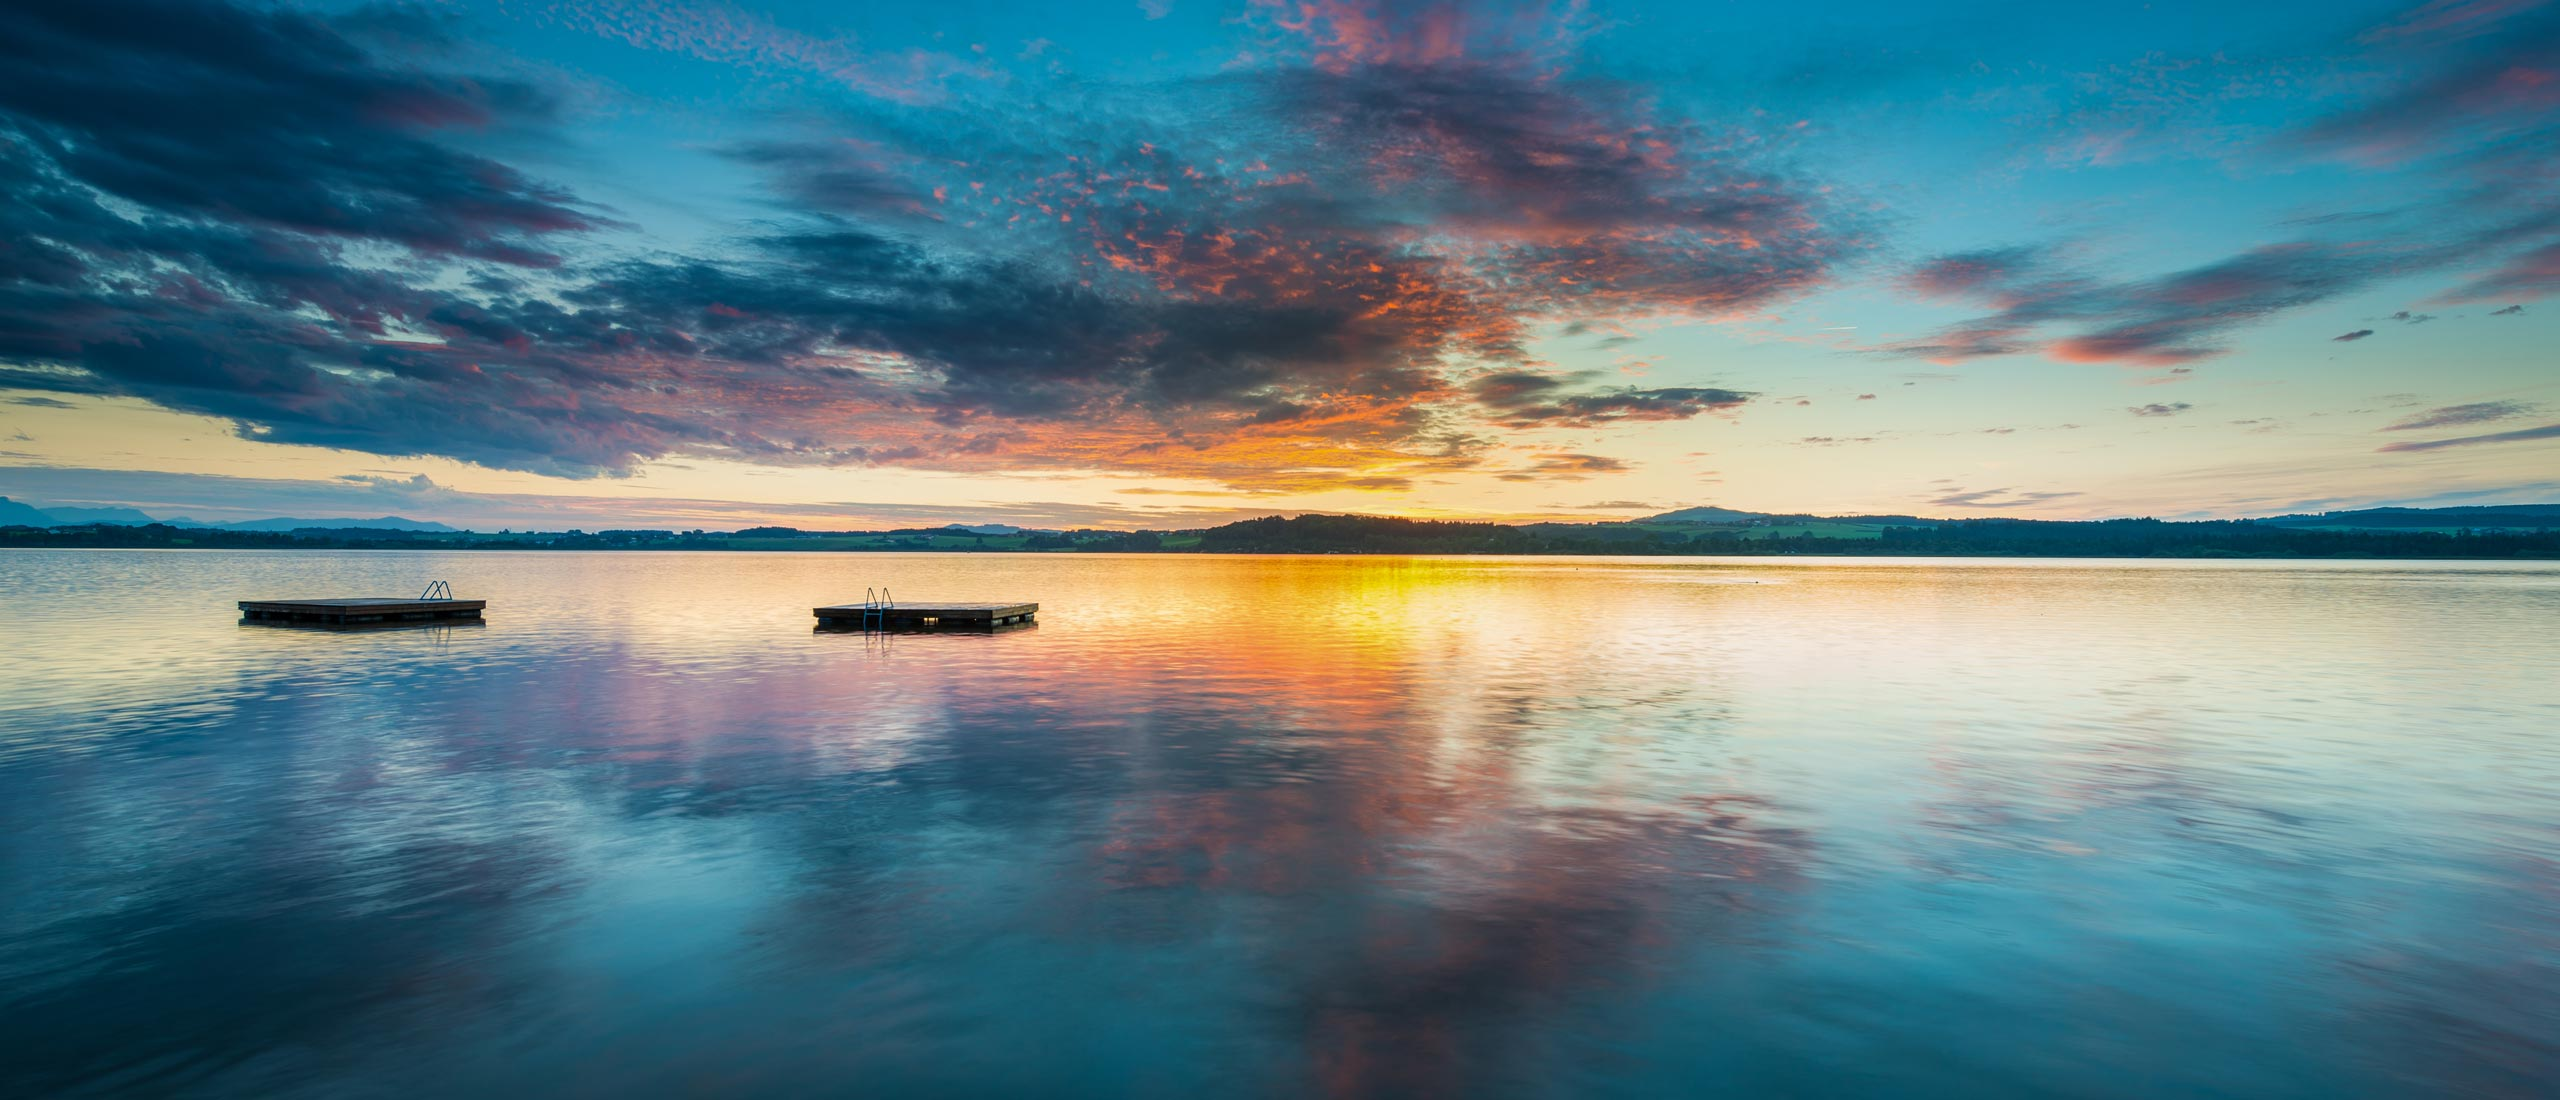 wallersee_sunset_blue